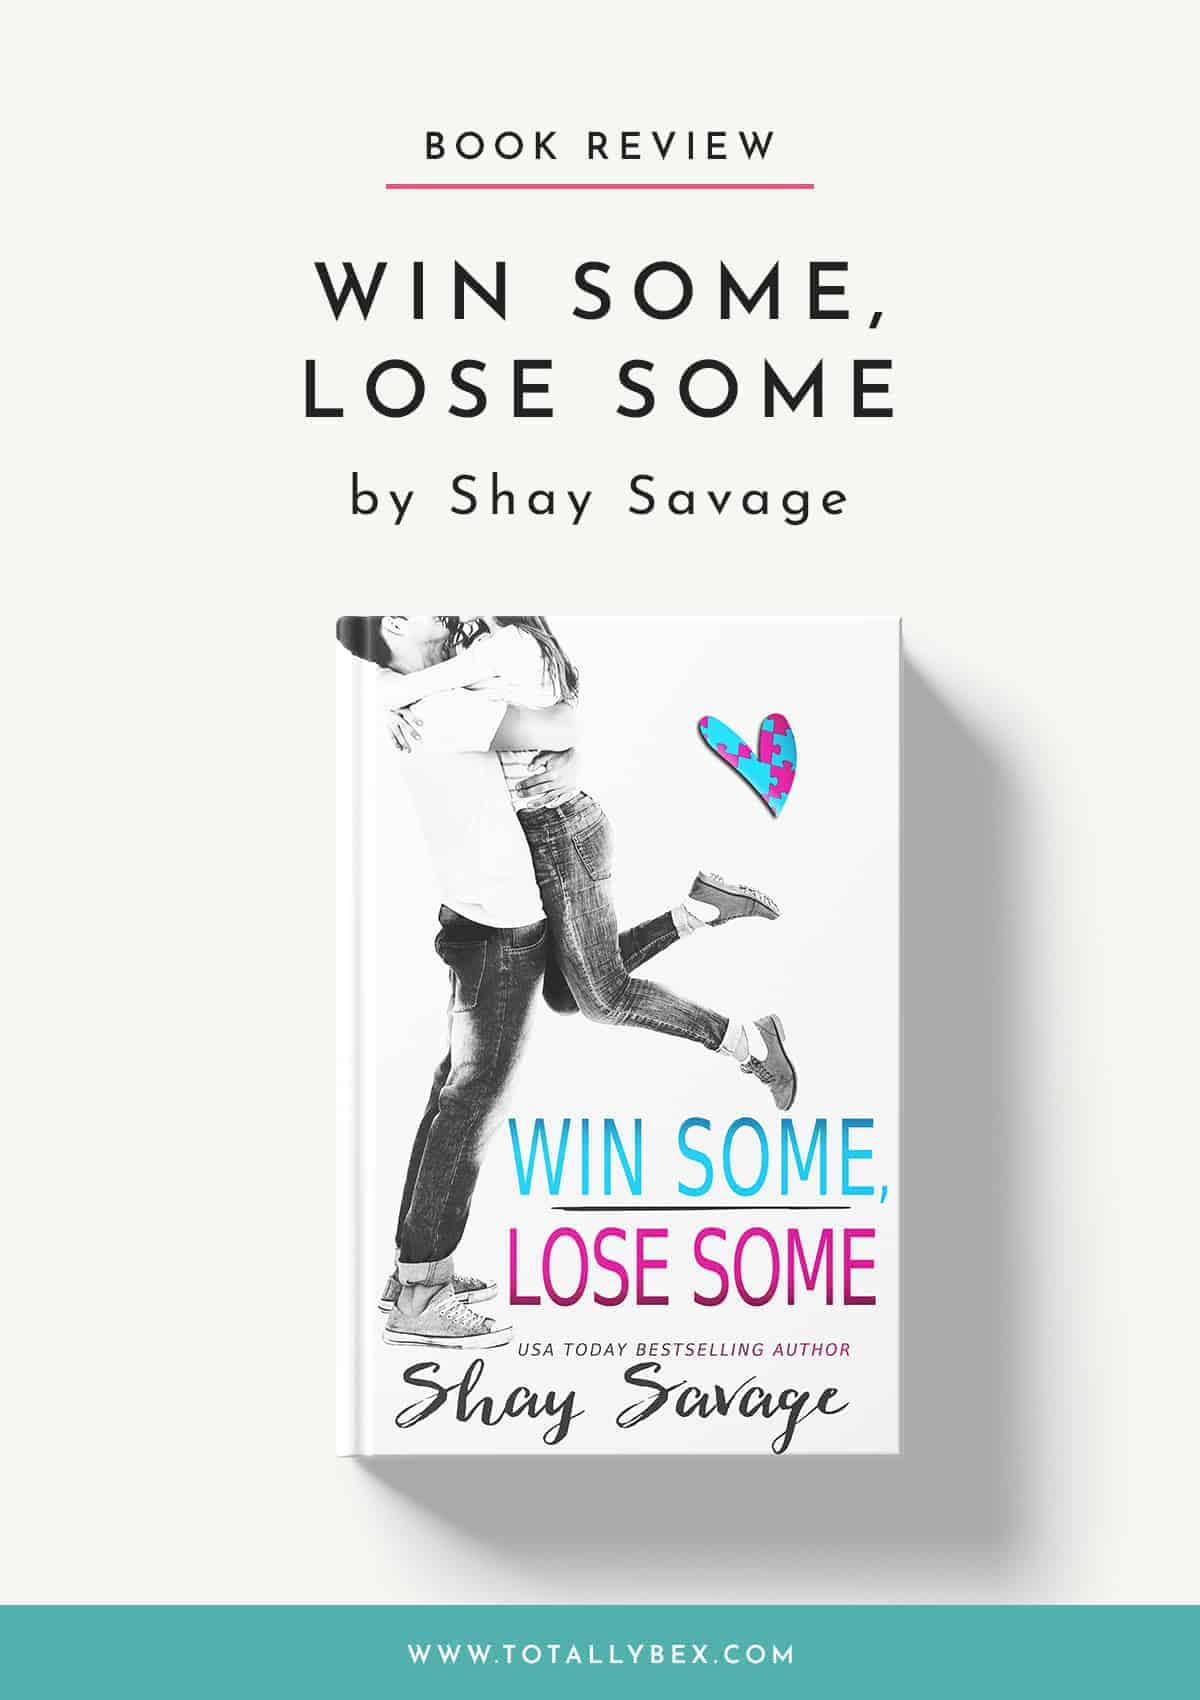 Win Some Lose Some by Shay Savage-Book Review